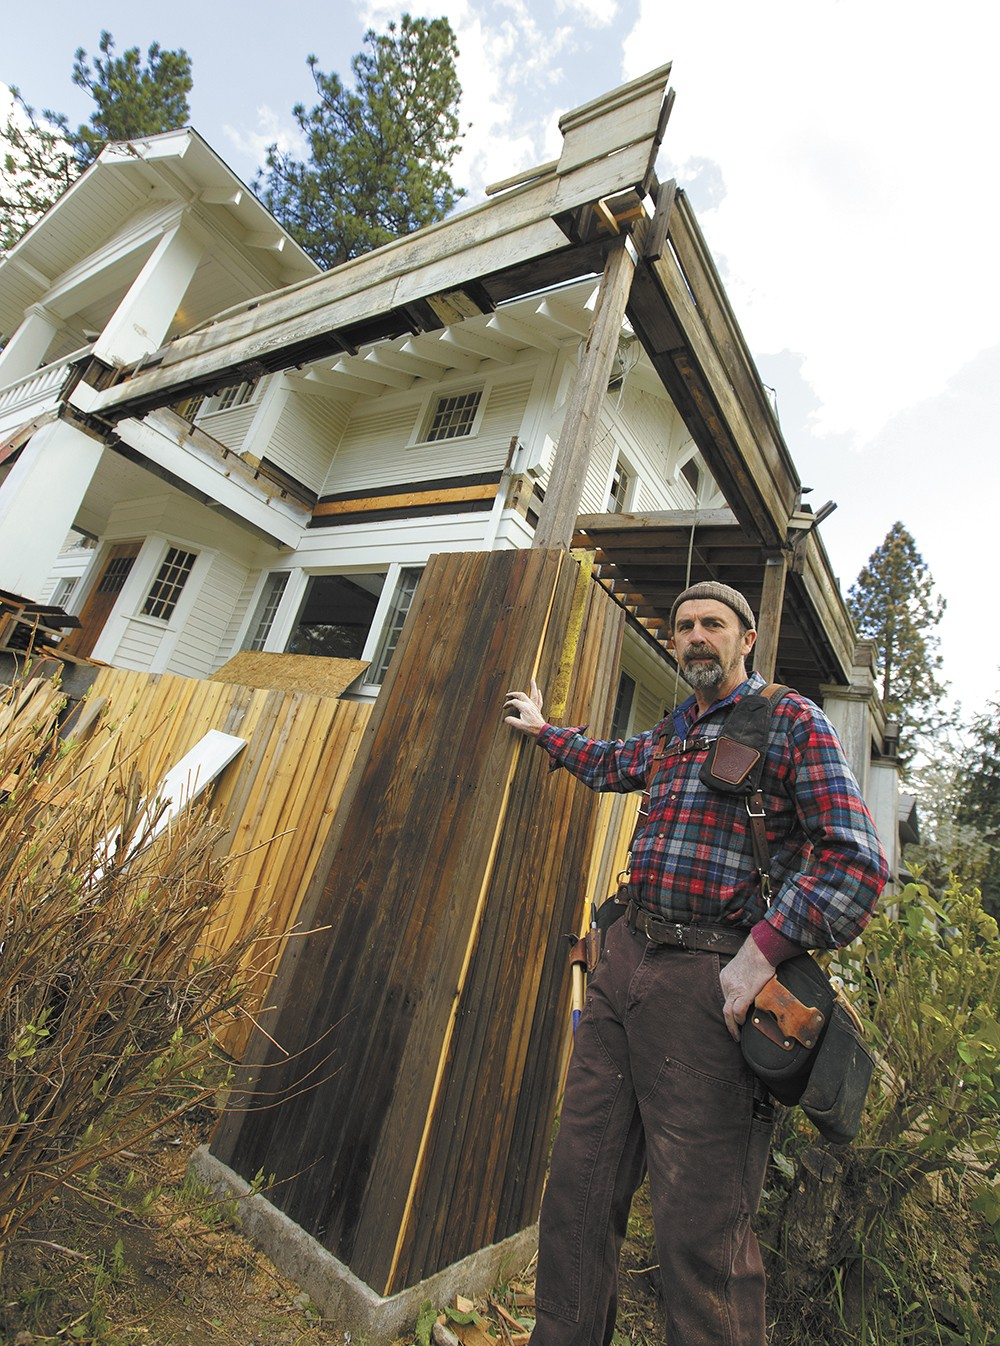 Henry Pierce III next to a Spokane house that's been in his family for three generations. - YOUNG KWAK